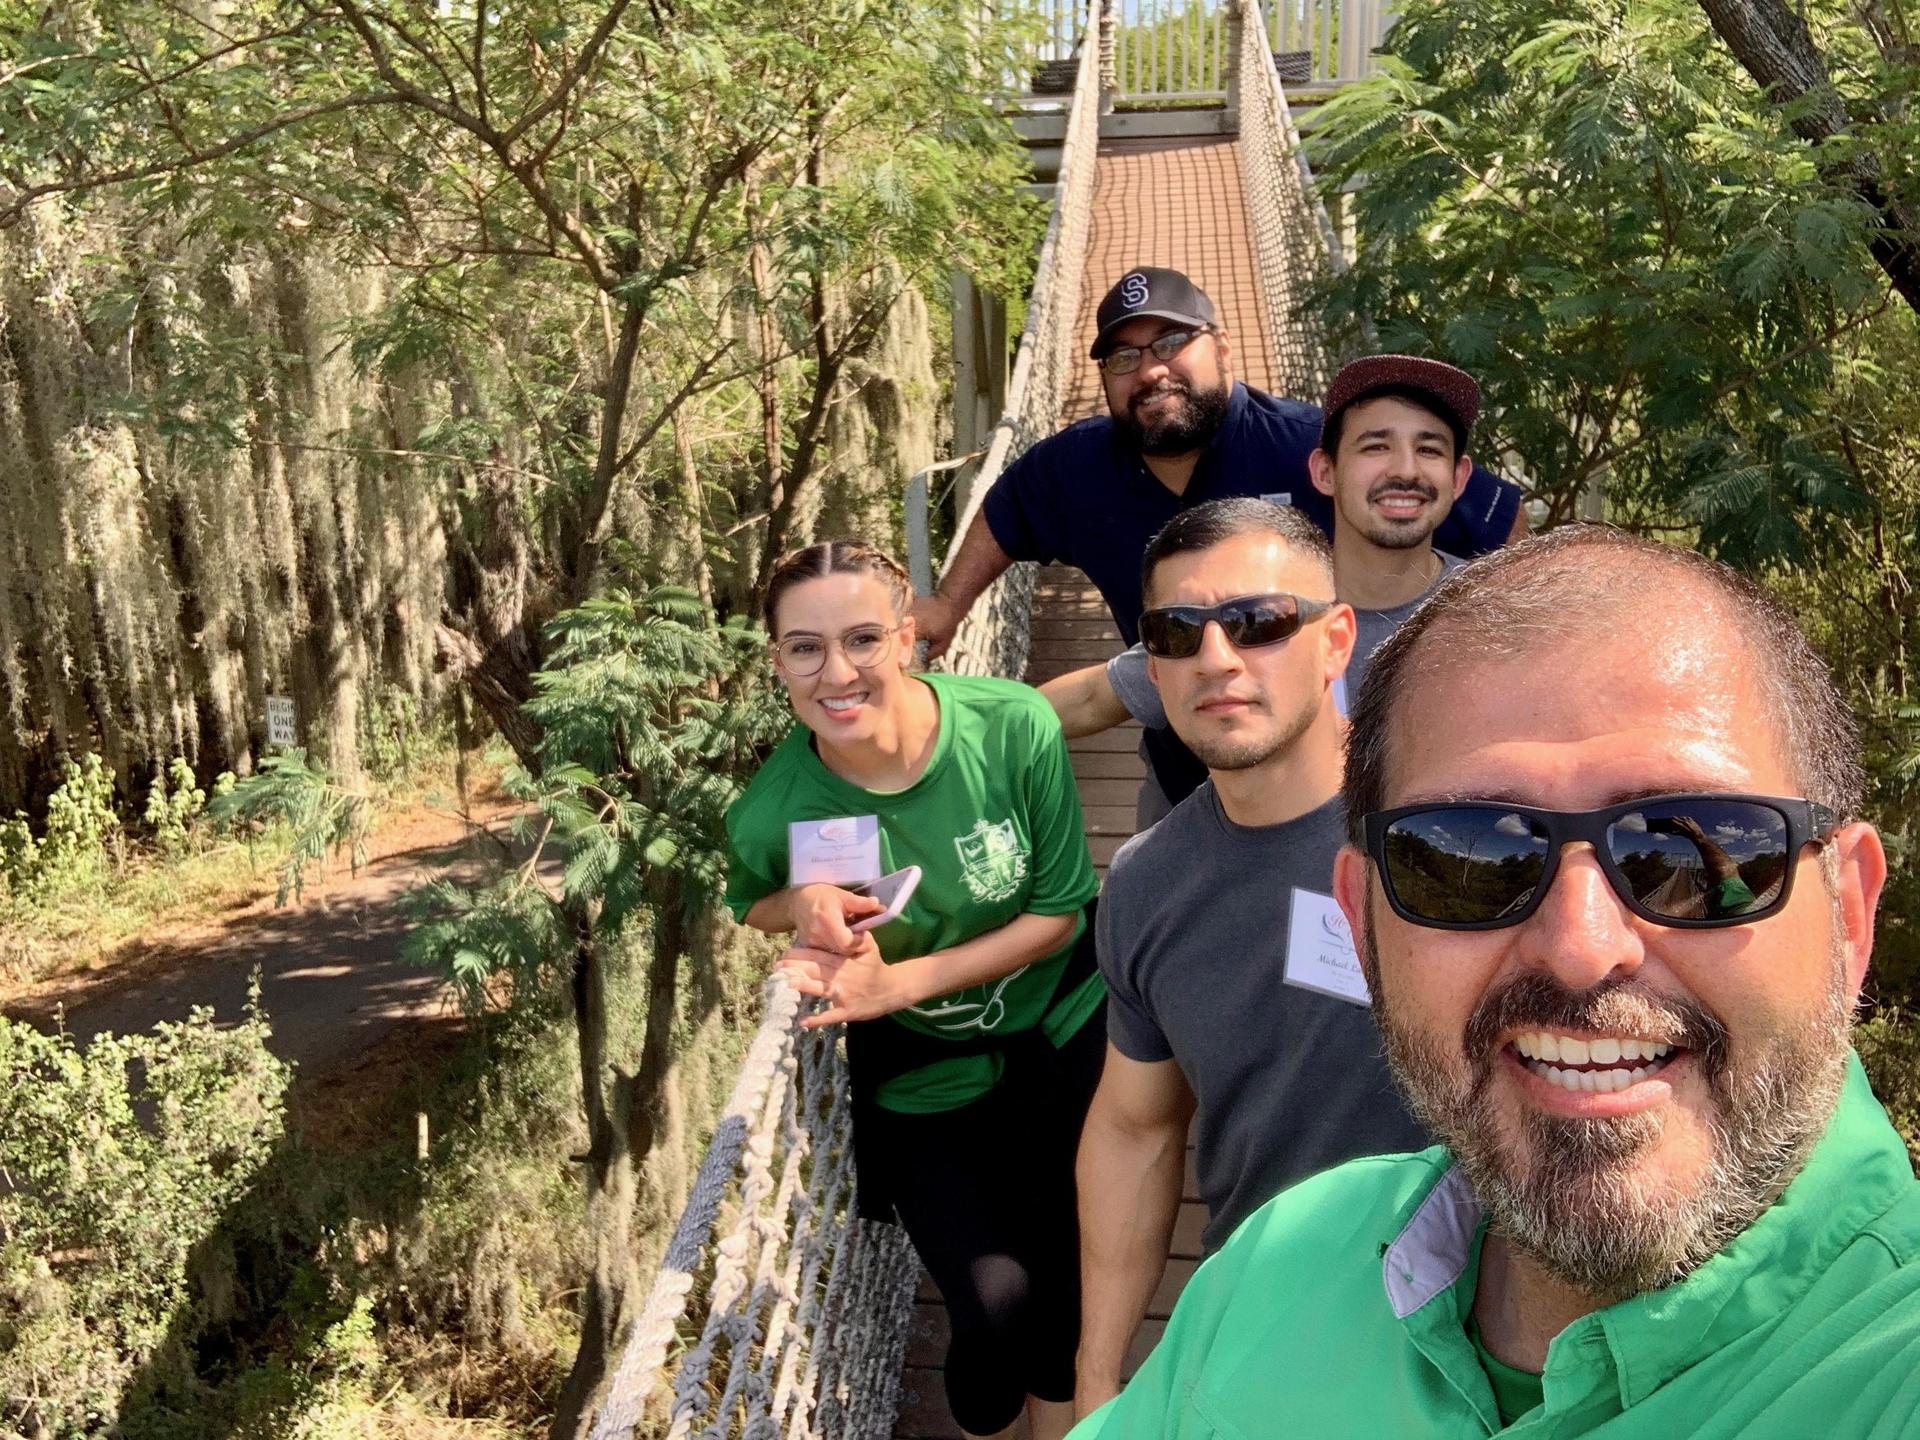 Group Photo of teachers on a bridge